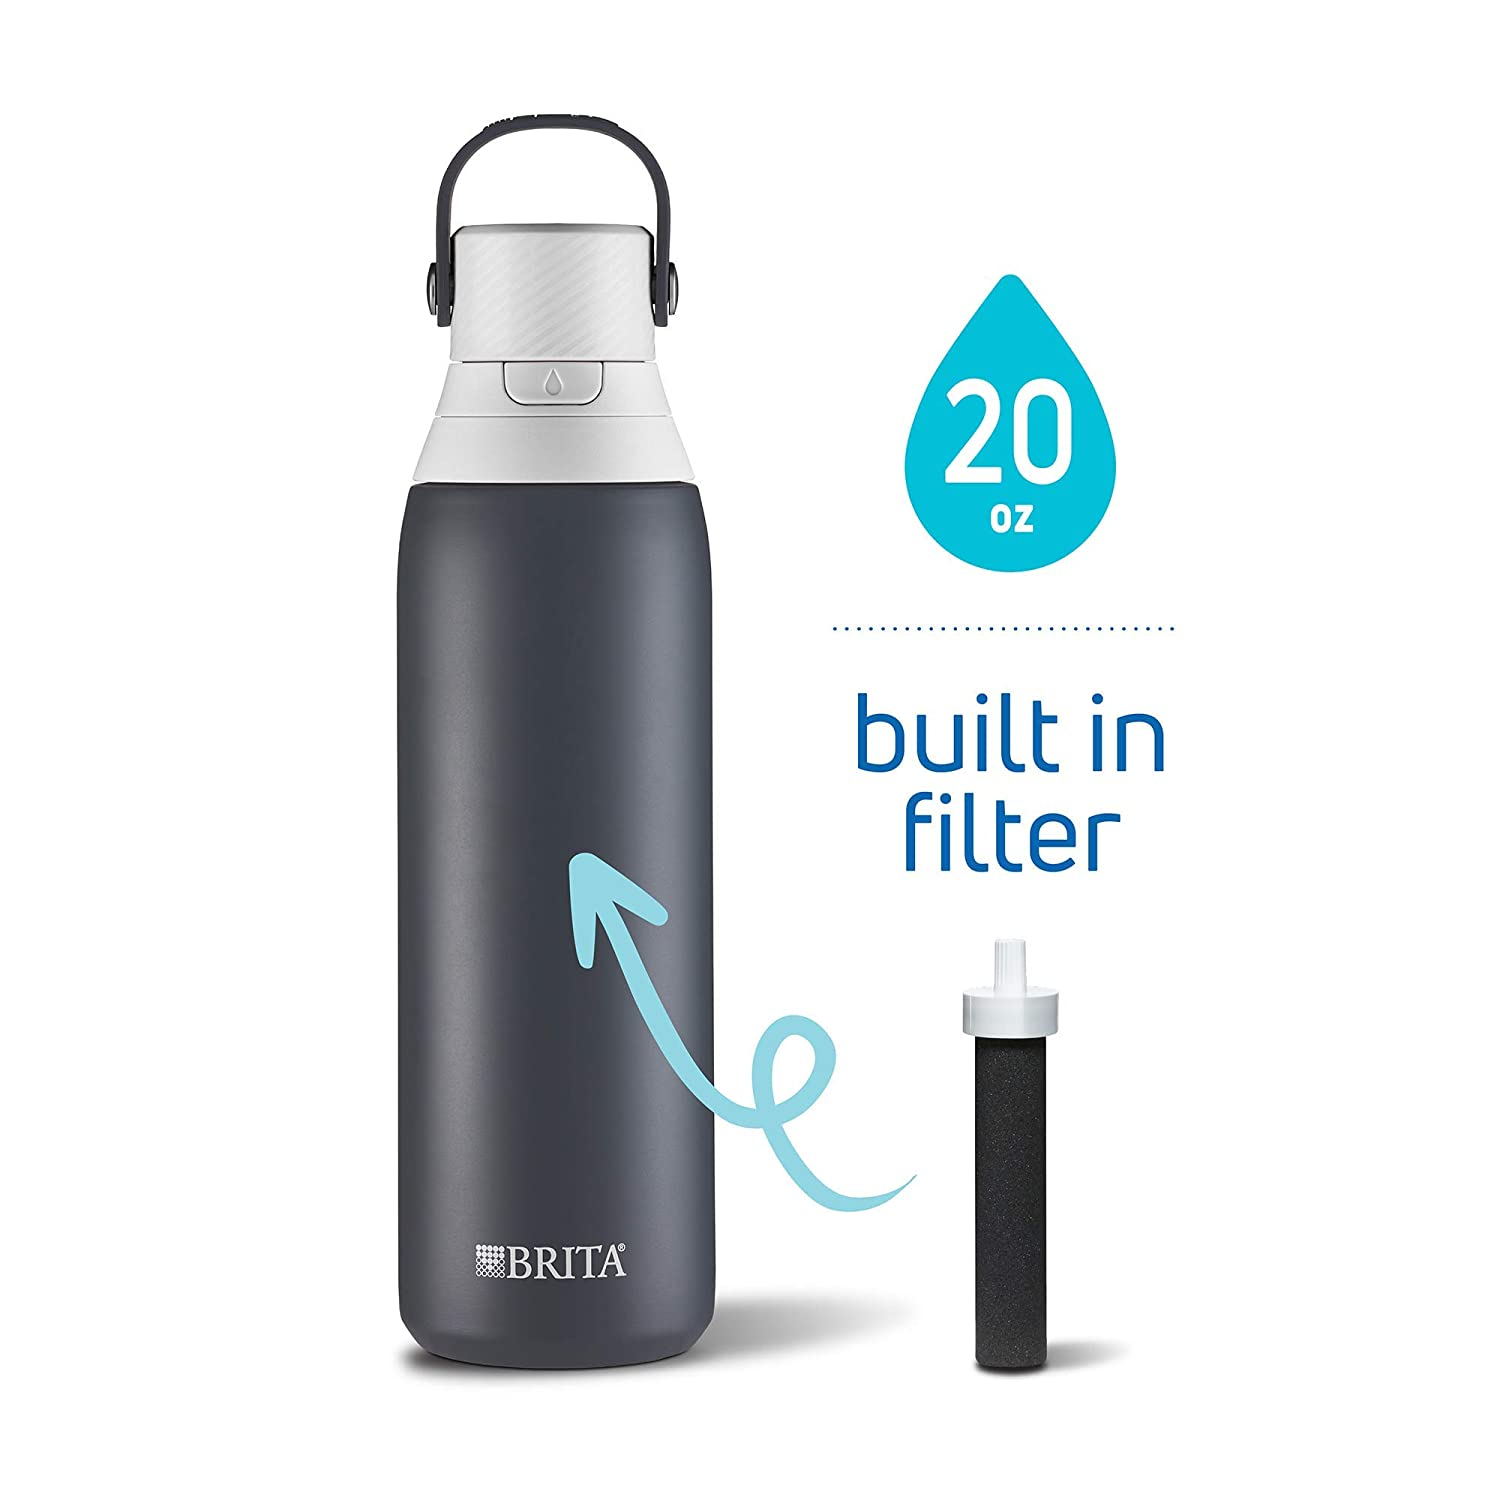 Brita 20 Ounce Premium Filtering Water Bottle with Filter - Double Wall Insulated Stainless Steel Bottle - BPA Free - Carbon and Assorted Colors